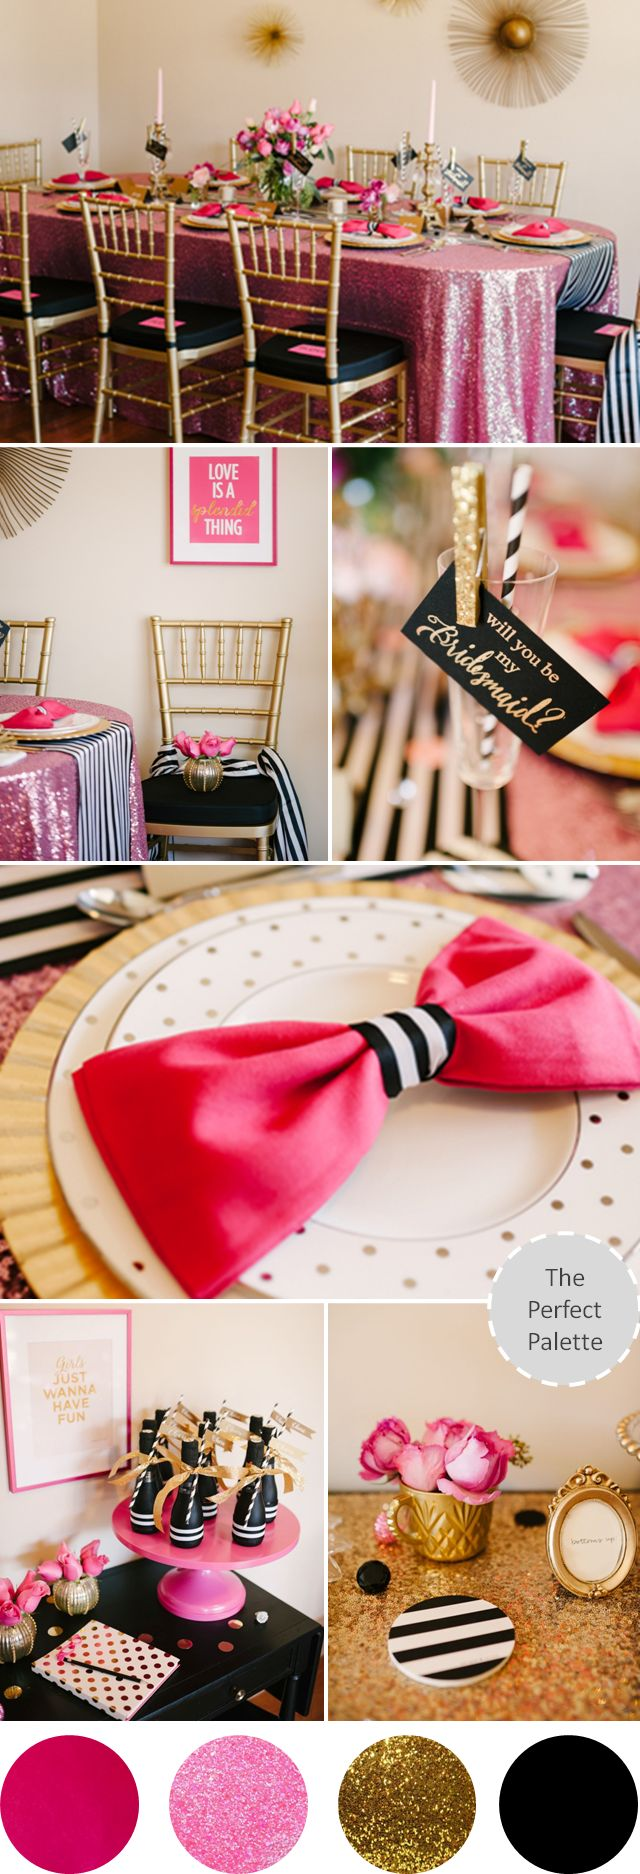 Kate Spade inspired great for a bachelorette party!